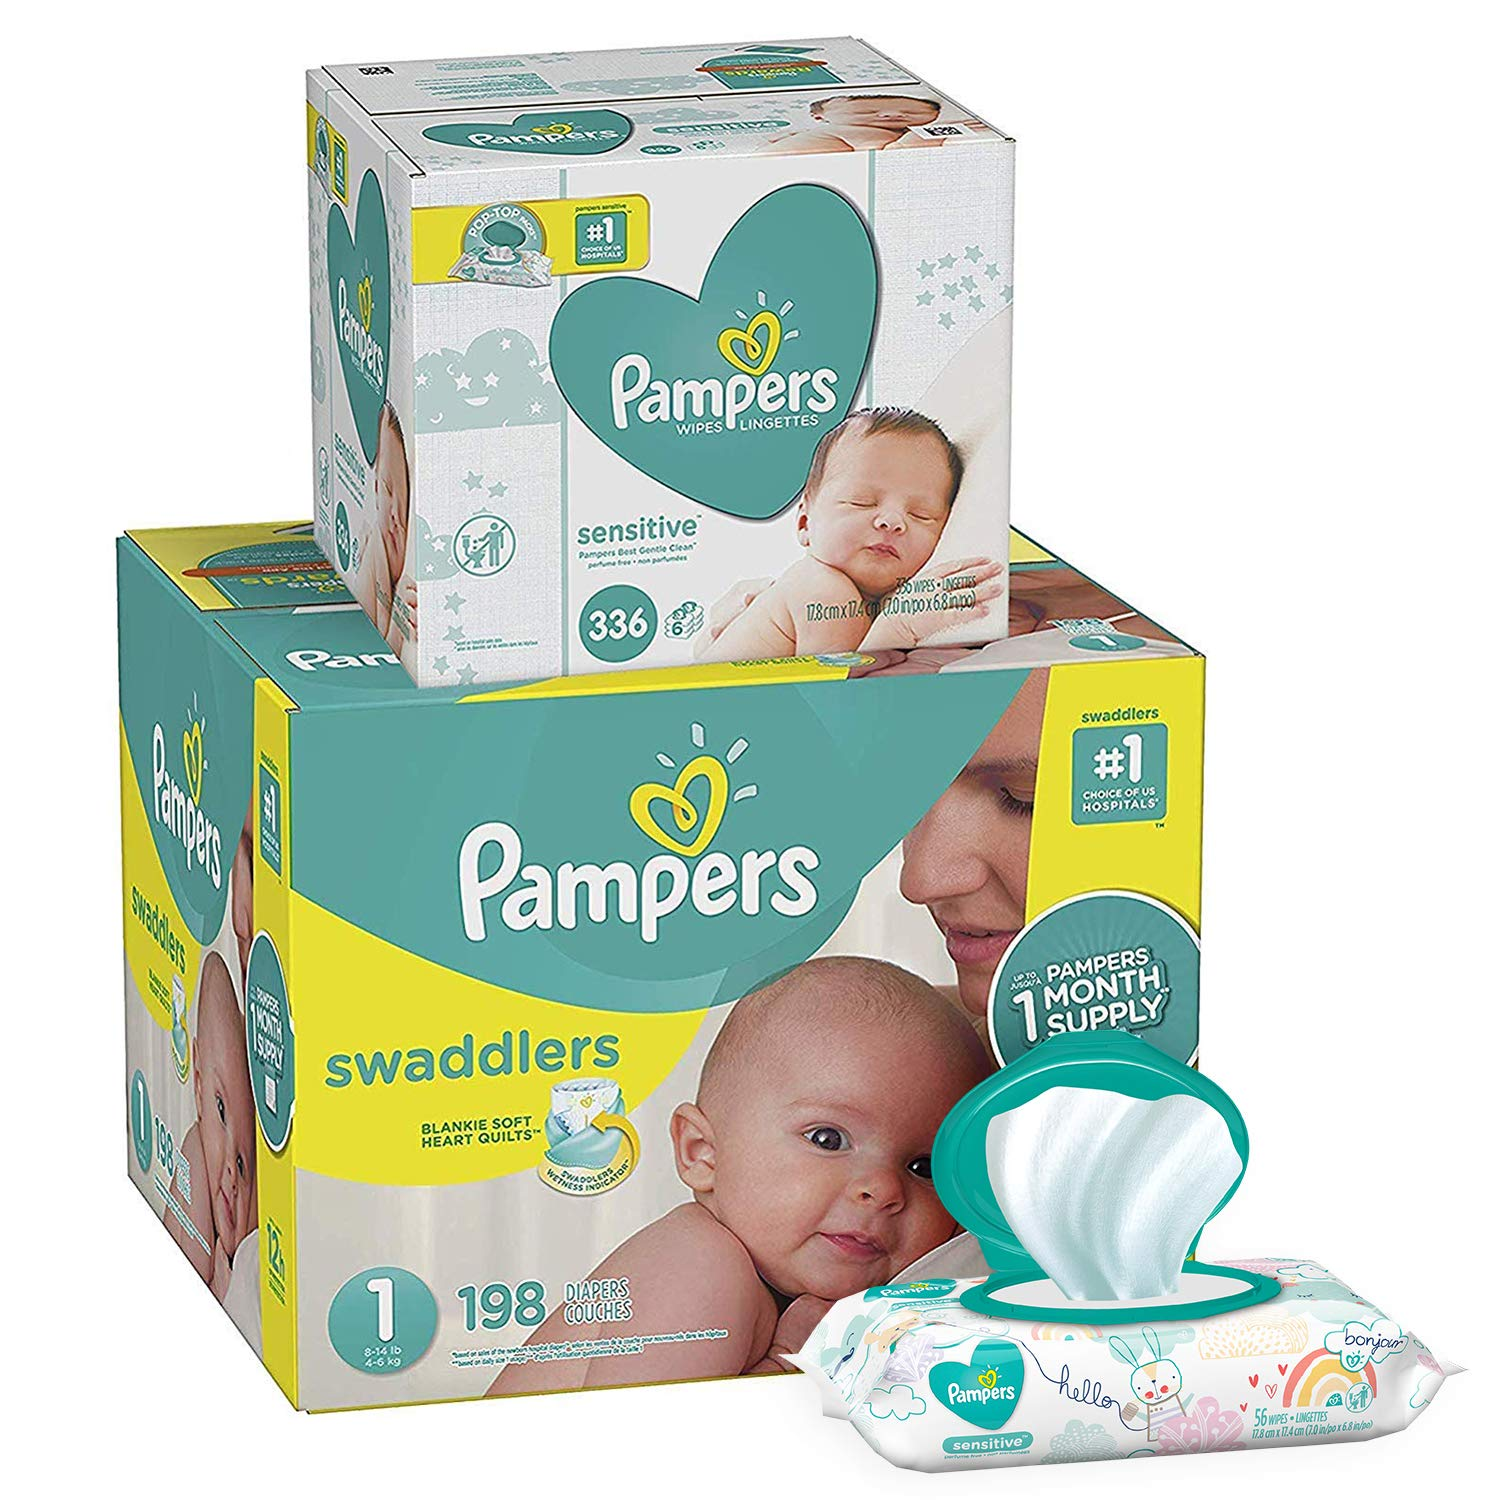 Pampers Swaddlers Disposable Baby Diapers Size 1, 198 Count and Baby Wipes Sensitive  Pop-Top Packs, 336 Count